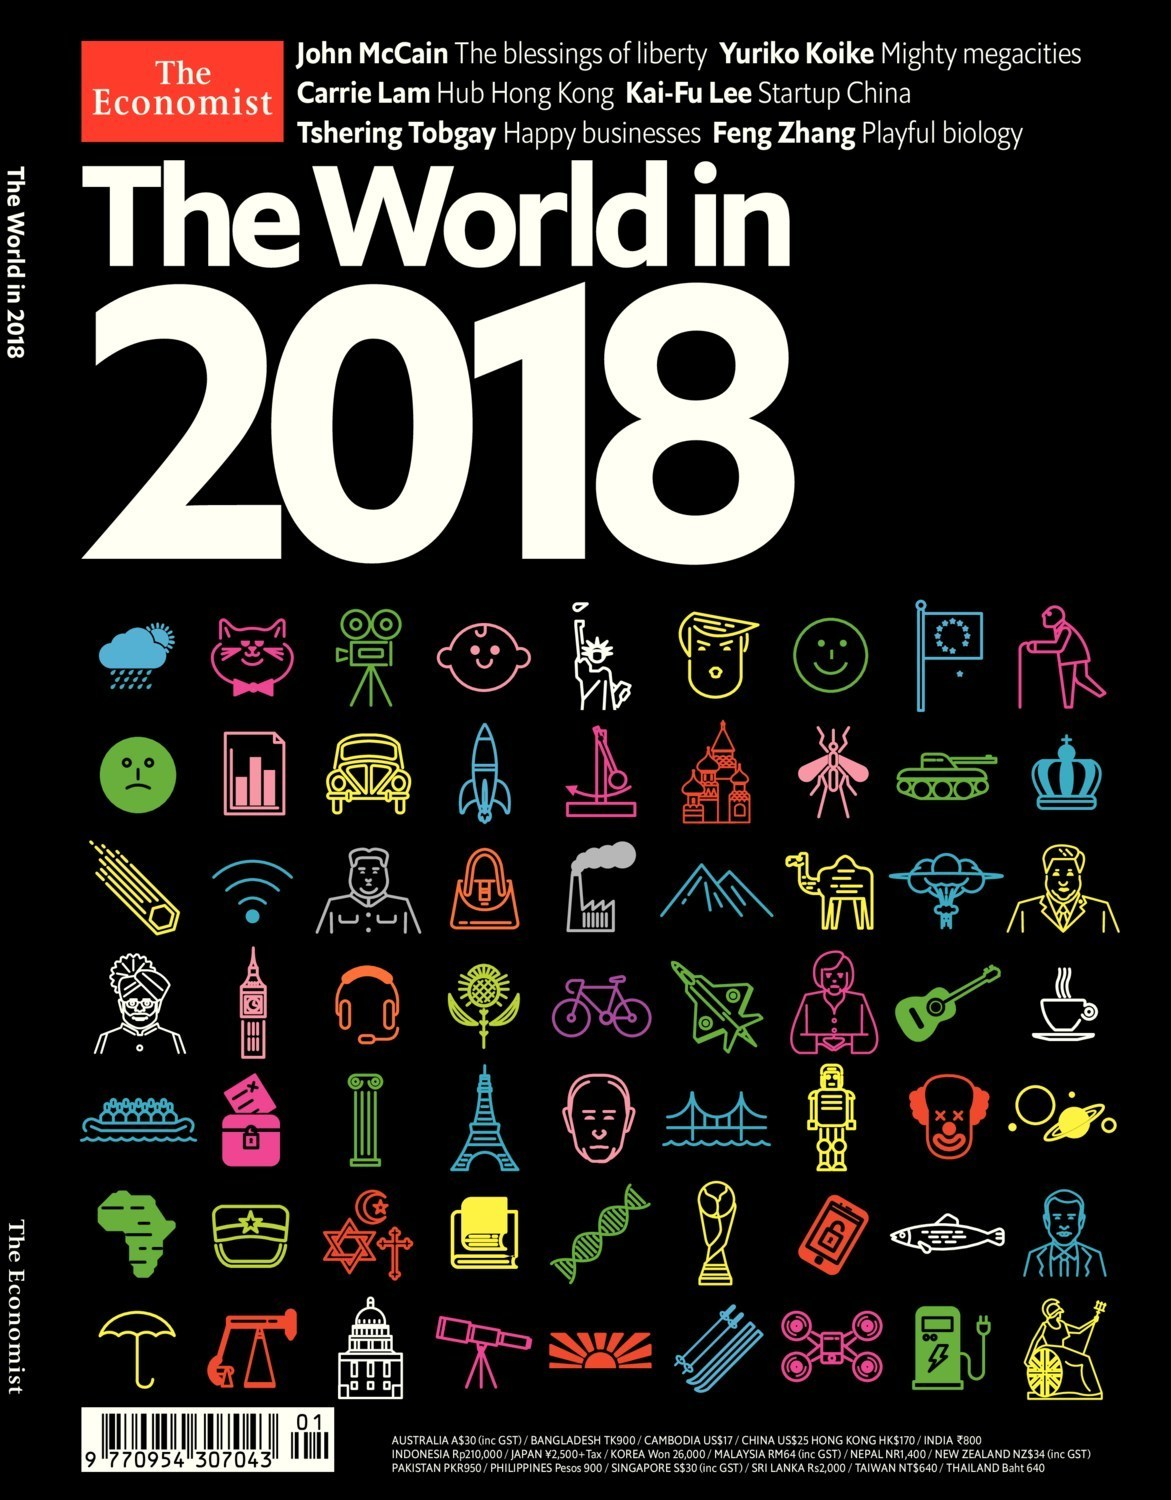 The World in 2018 from The Economist highlights key global themes to watch  for next year